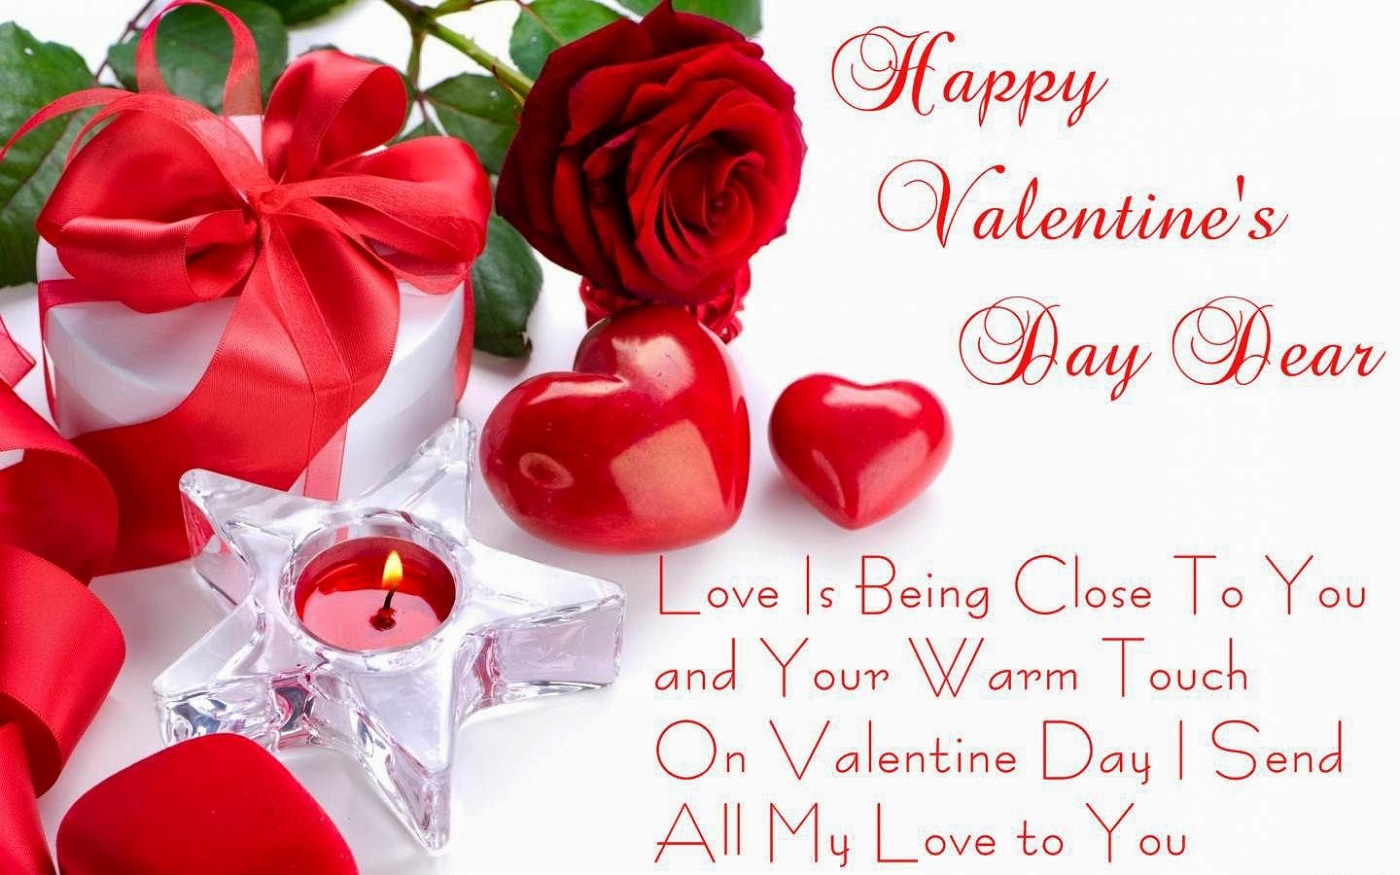 Love Quote Of The Day For Him Besthappy Valentines Day Quotes For Him  Happy Valentines Day